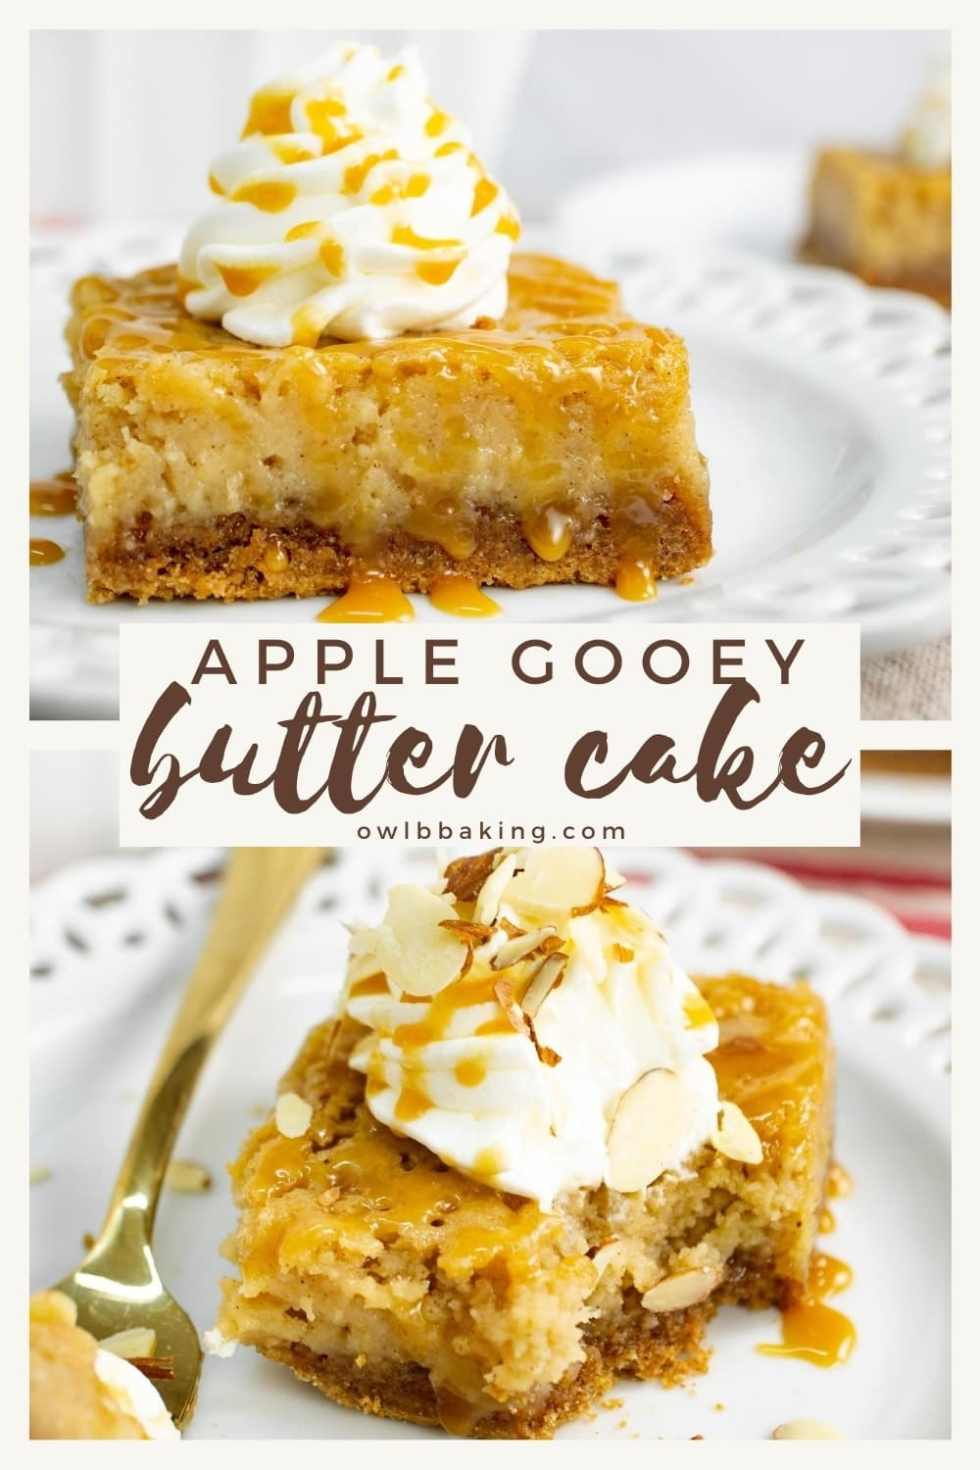 Apple Gooey Butter Cake